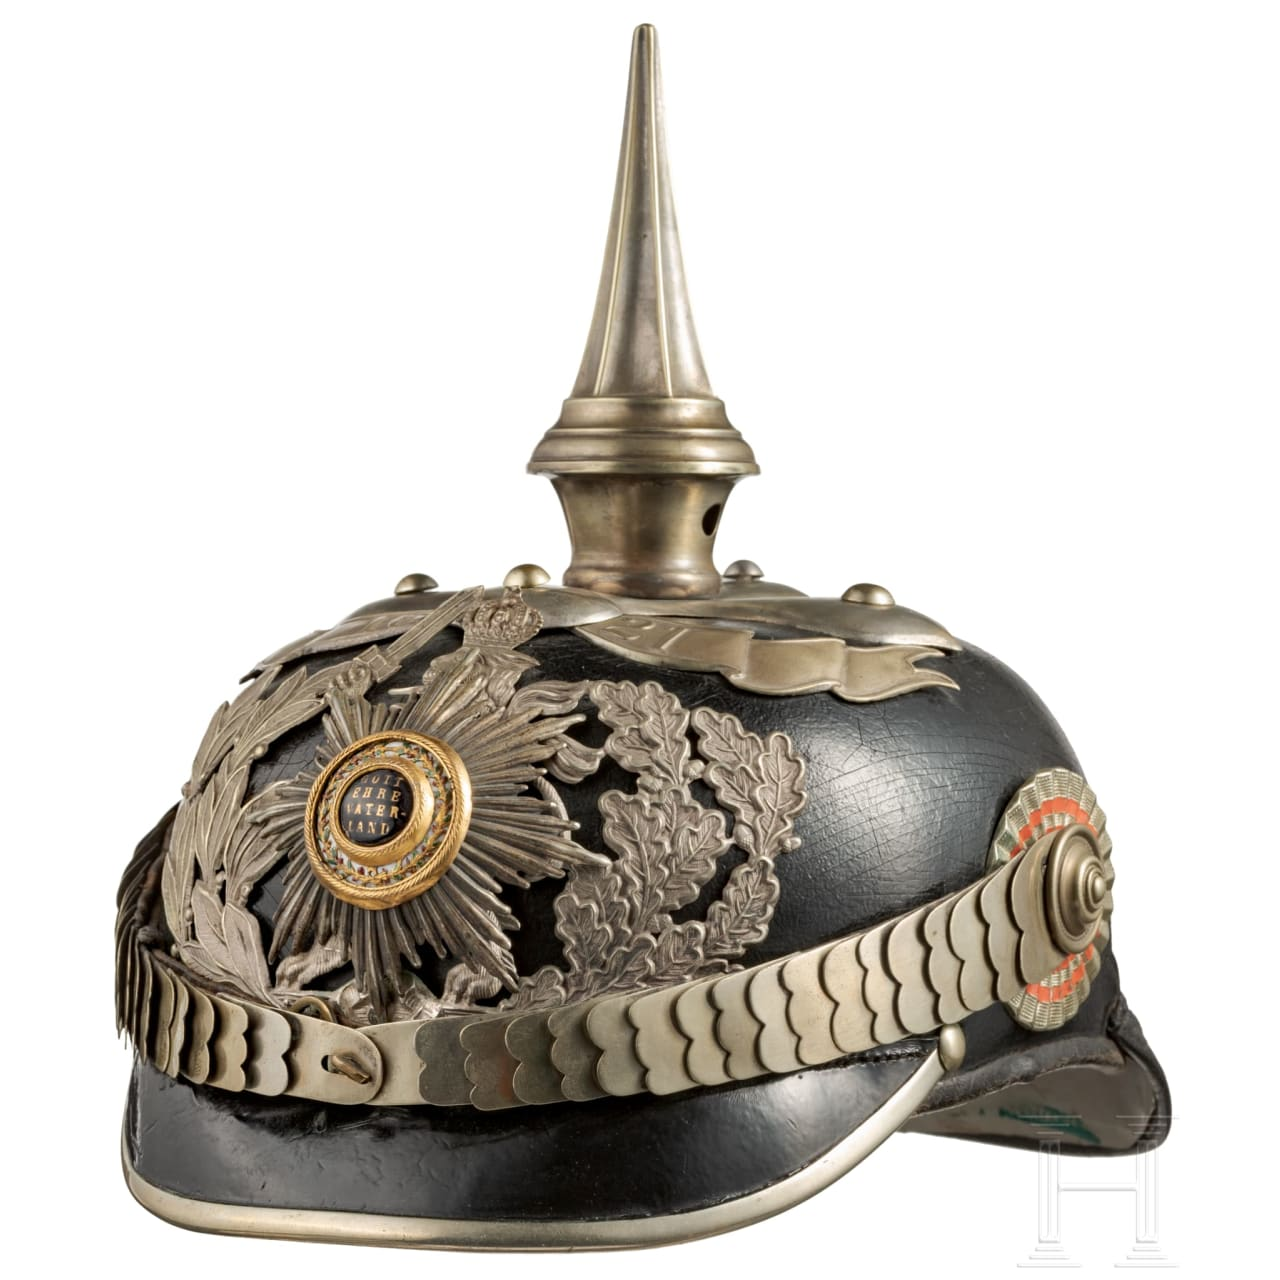 A helmet for officers of the Life Guards Infantry Regiment (1st Grand Ducal Hessian) No. 115, circa 1900